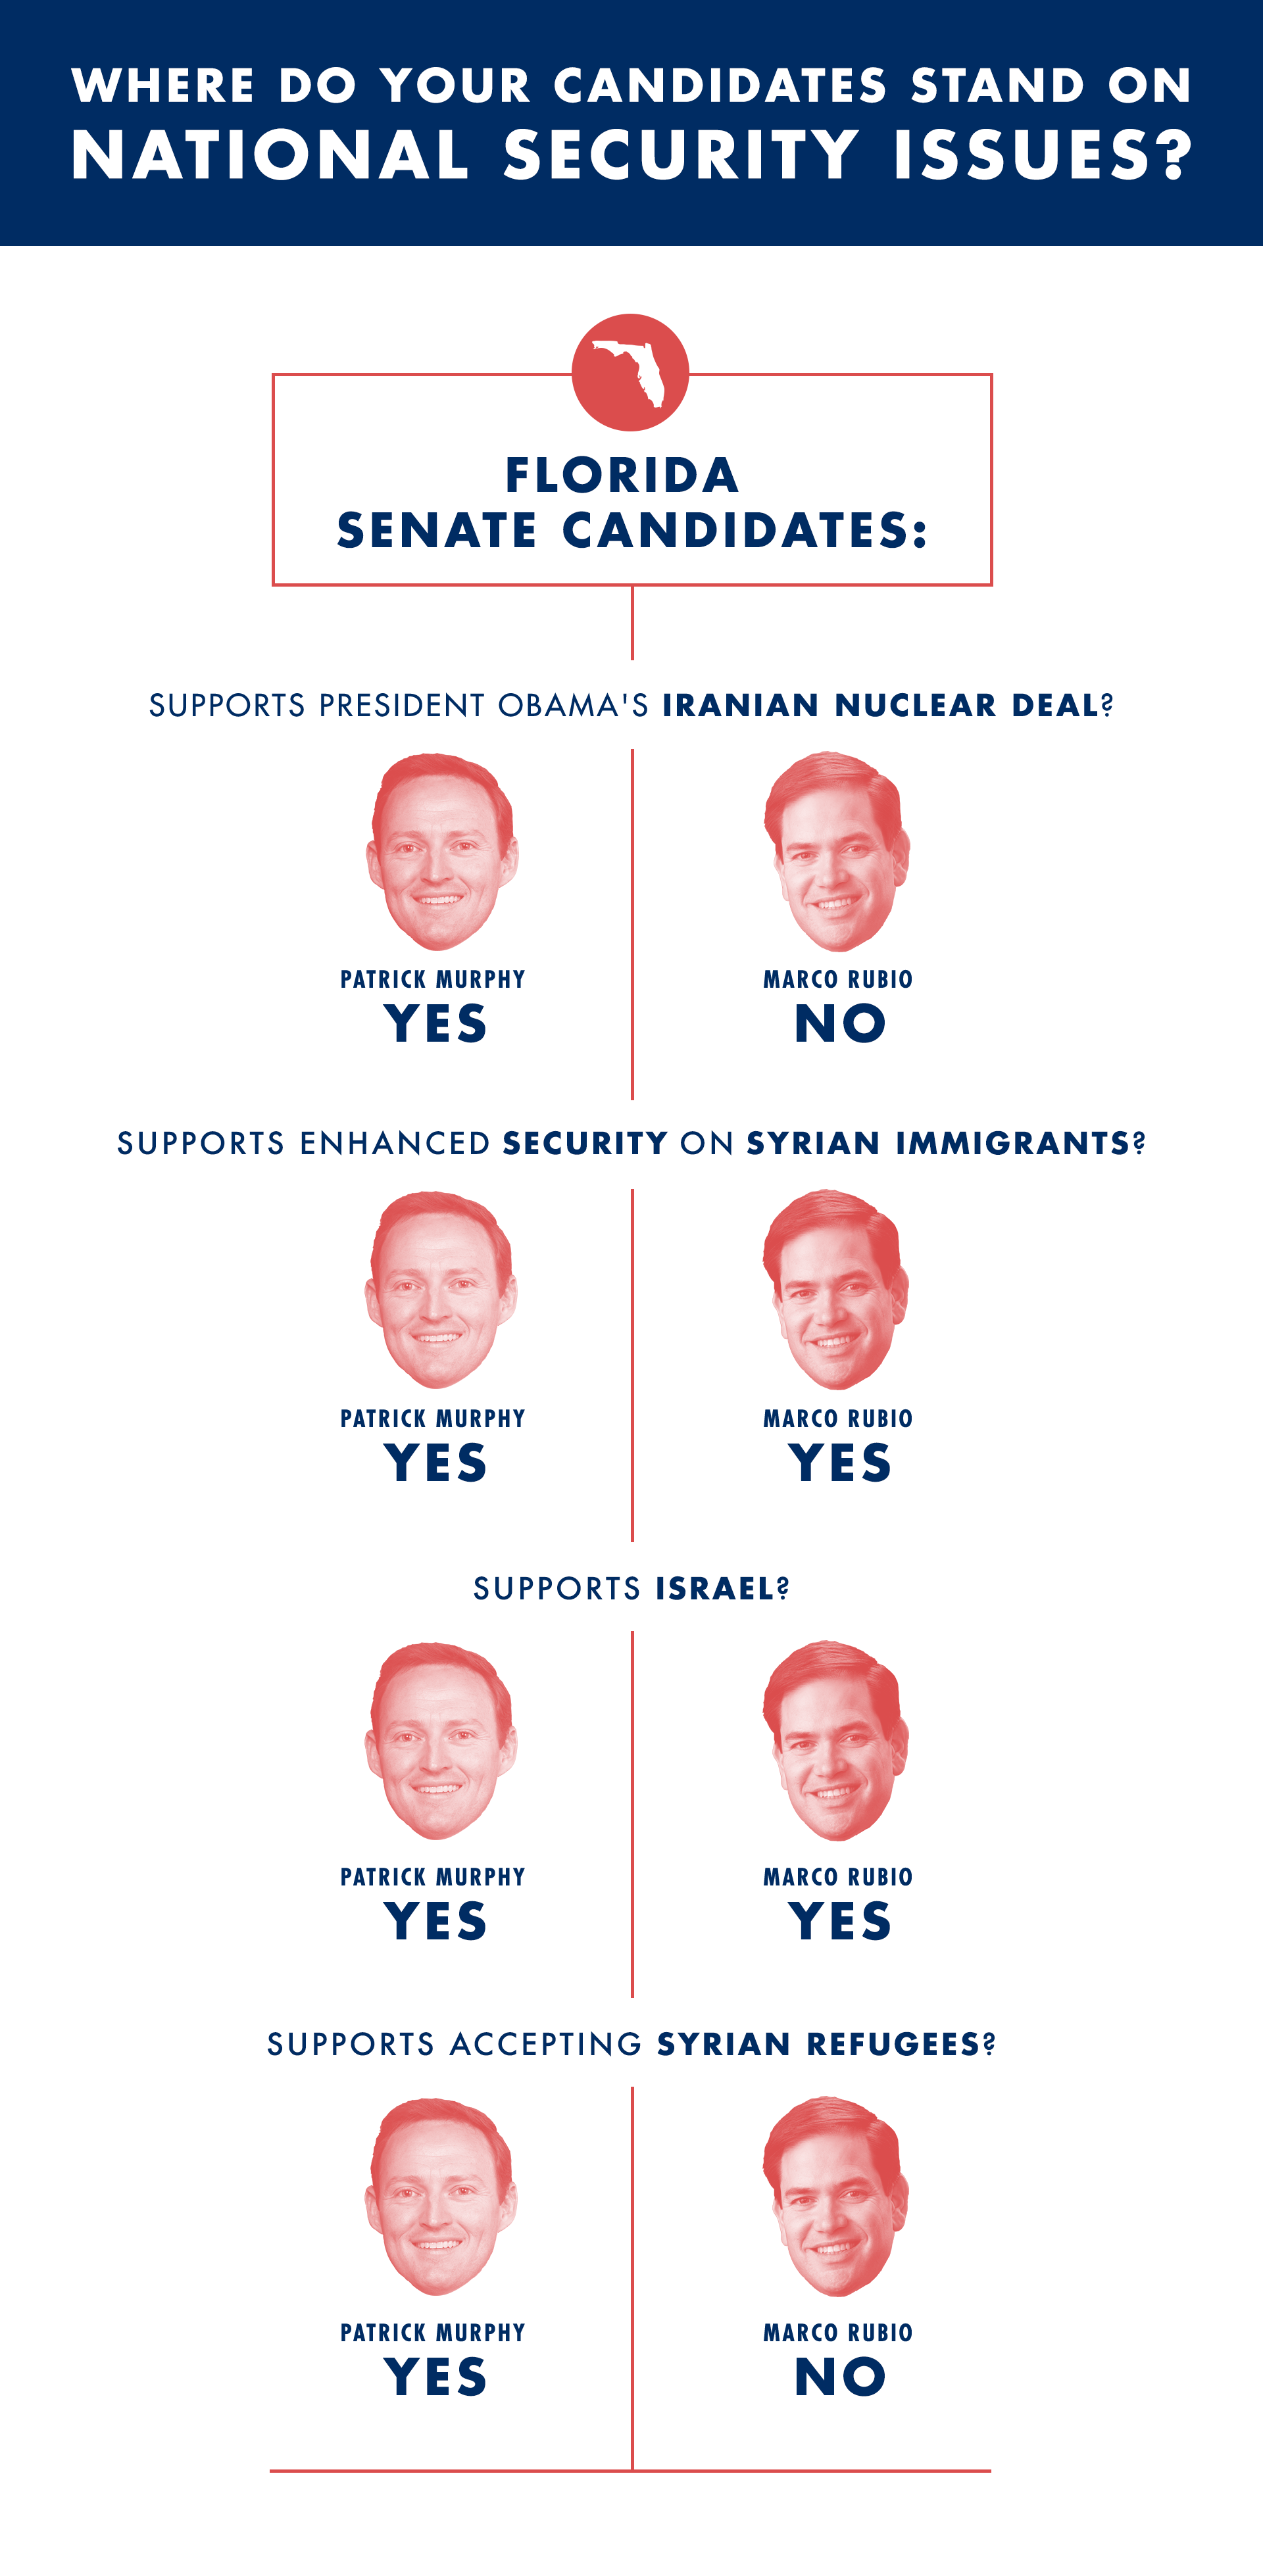 SAN_website-graphic_where-do-your-candidates-stand-FL-main2.png